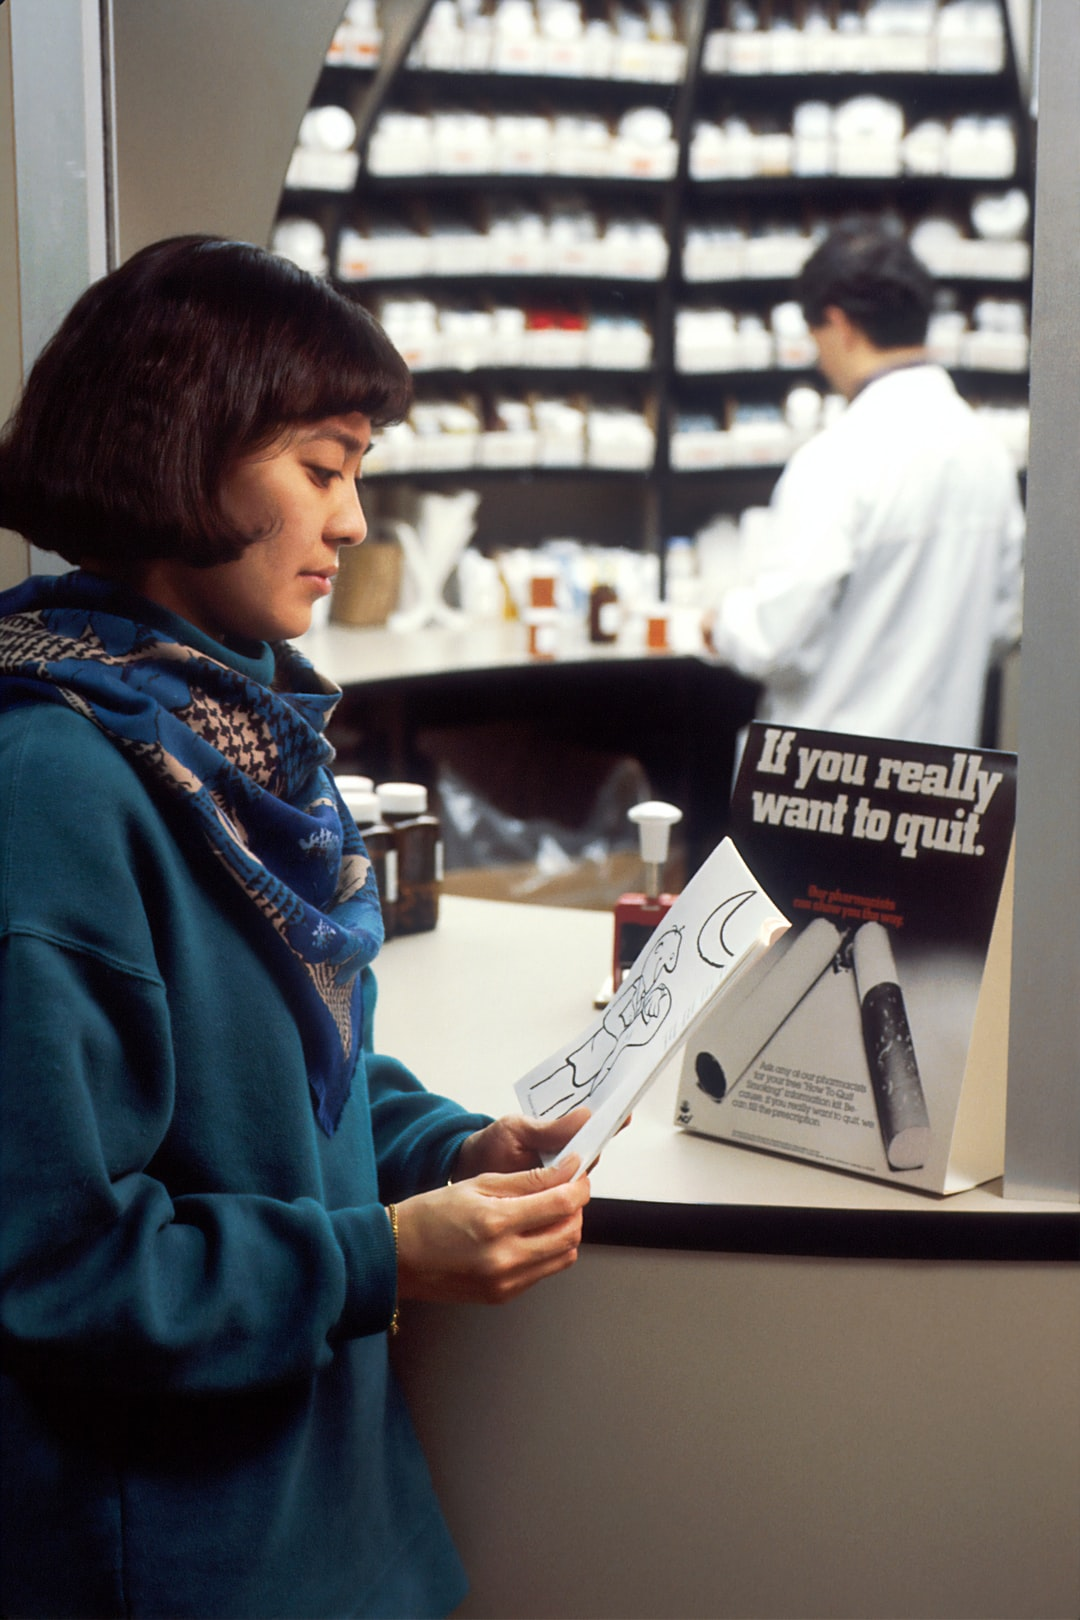 An Asian female reading a booklet at a pharmacy counter while a male pharmacist works in the background.